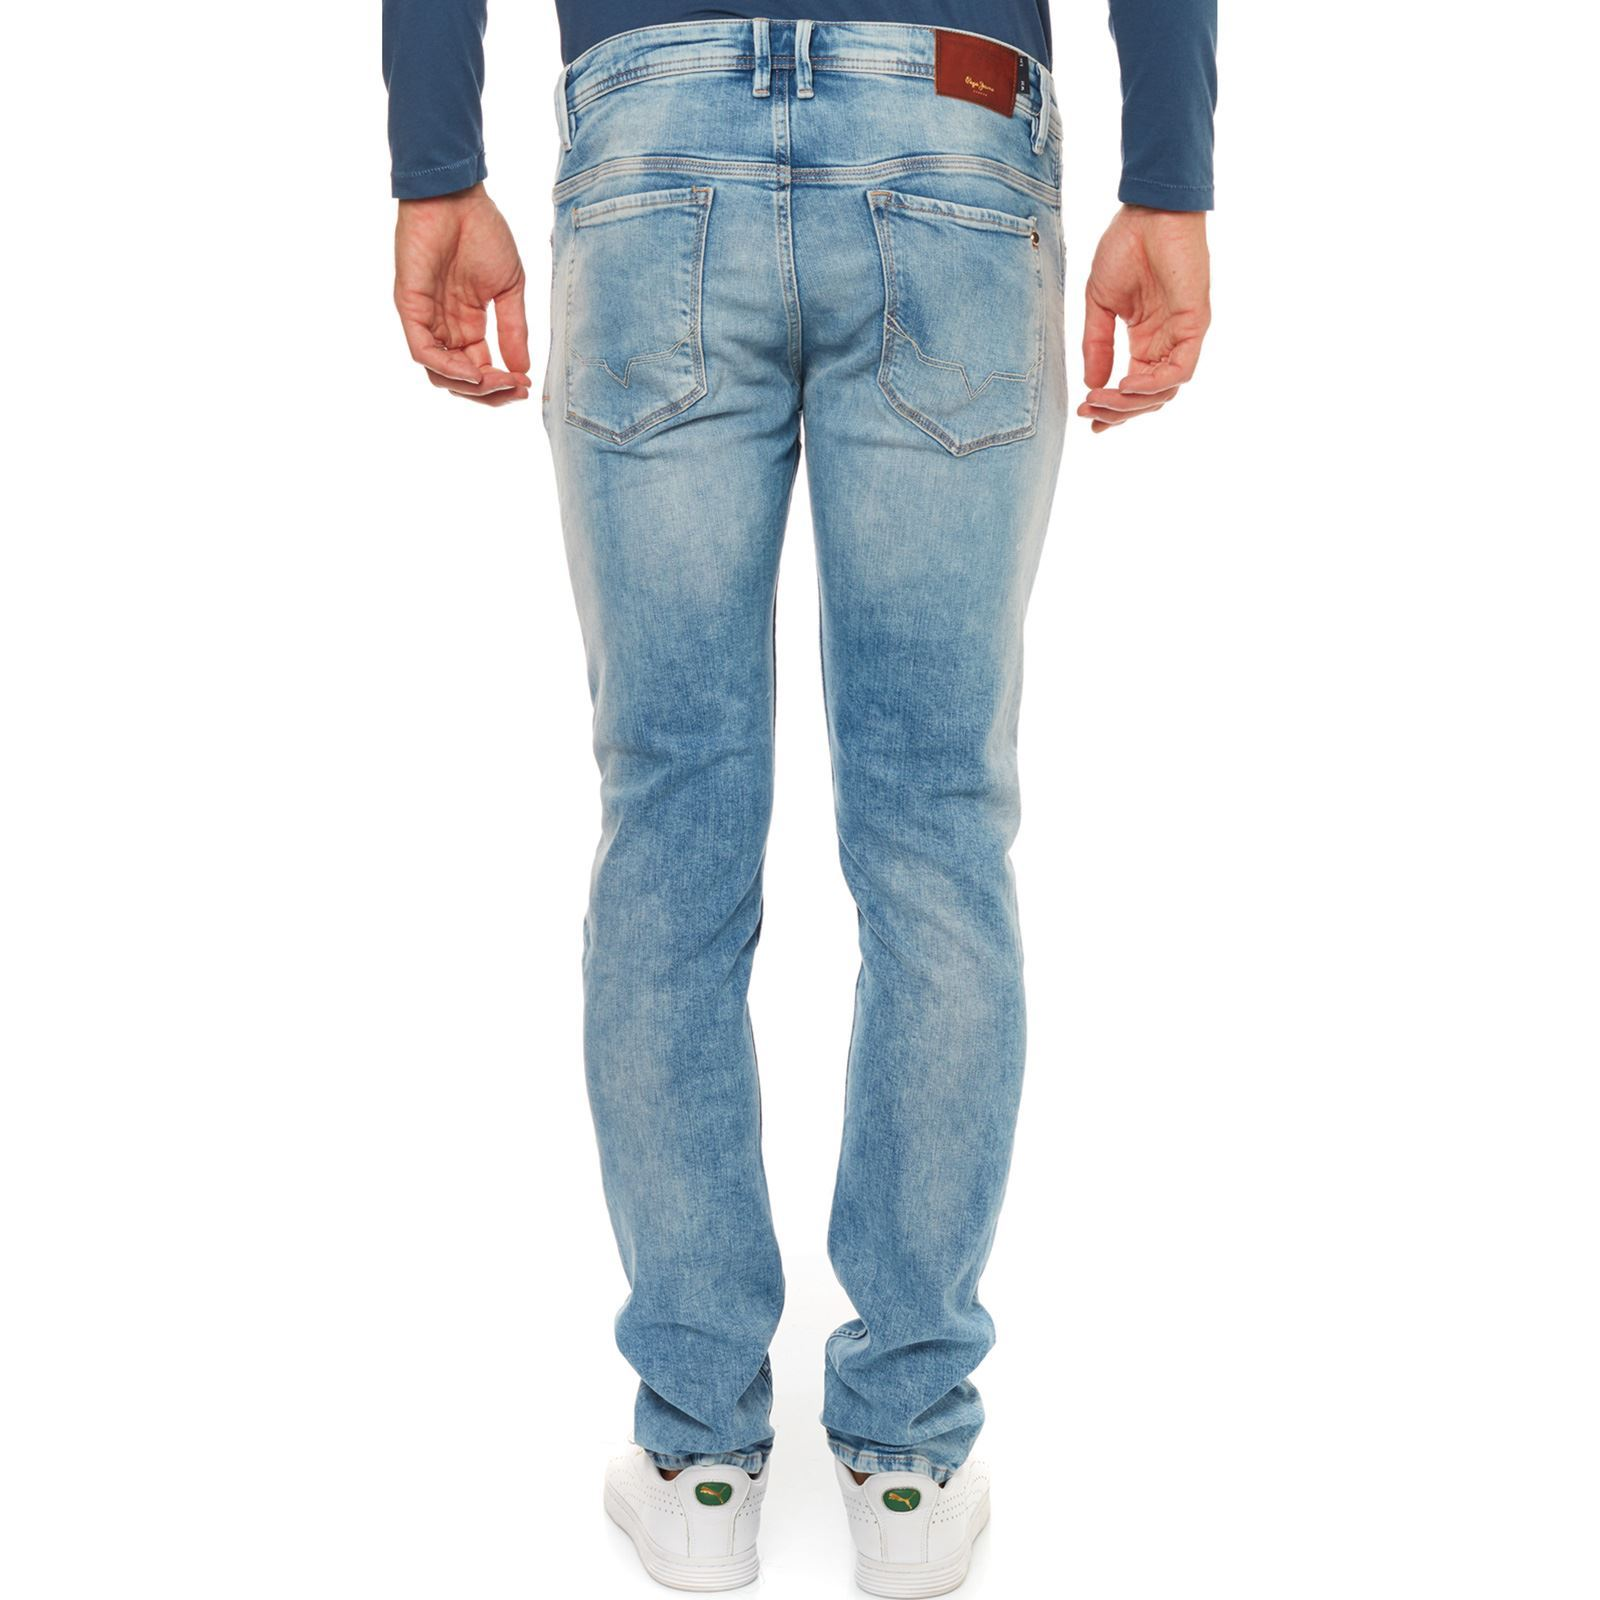 London Bleu Worn Jean Cut Zinc Pepe Jeans Brandalley Slim Izng450